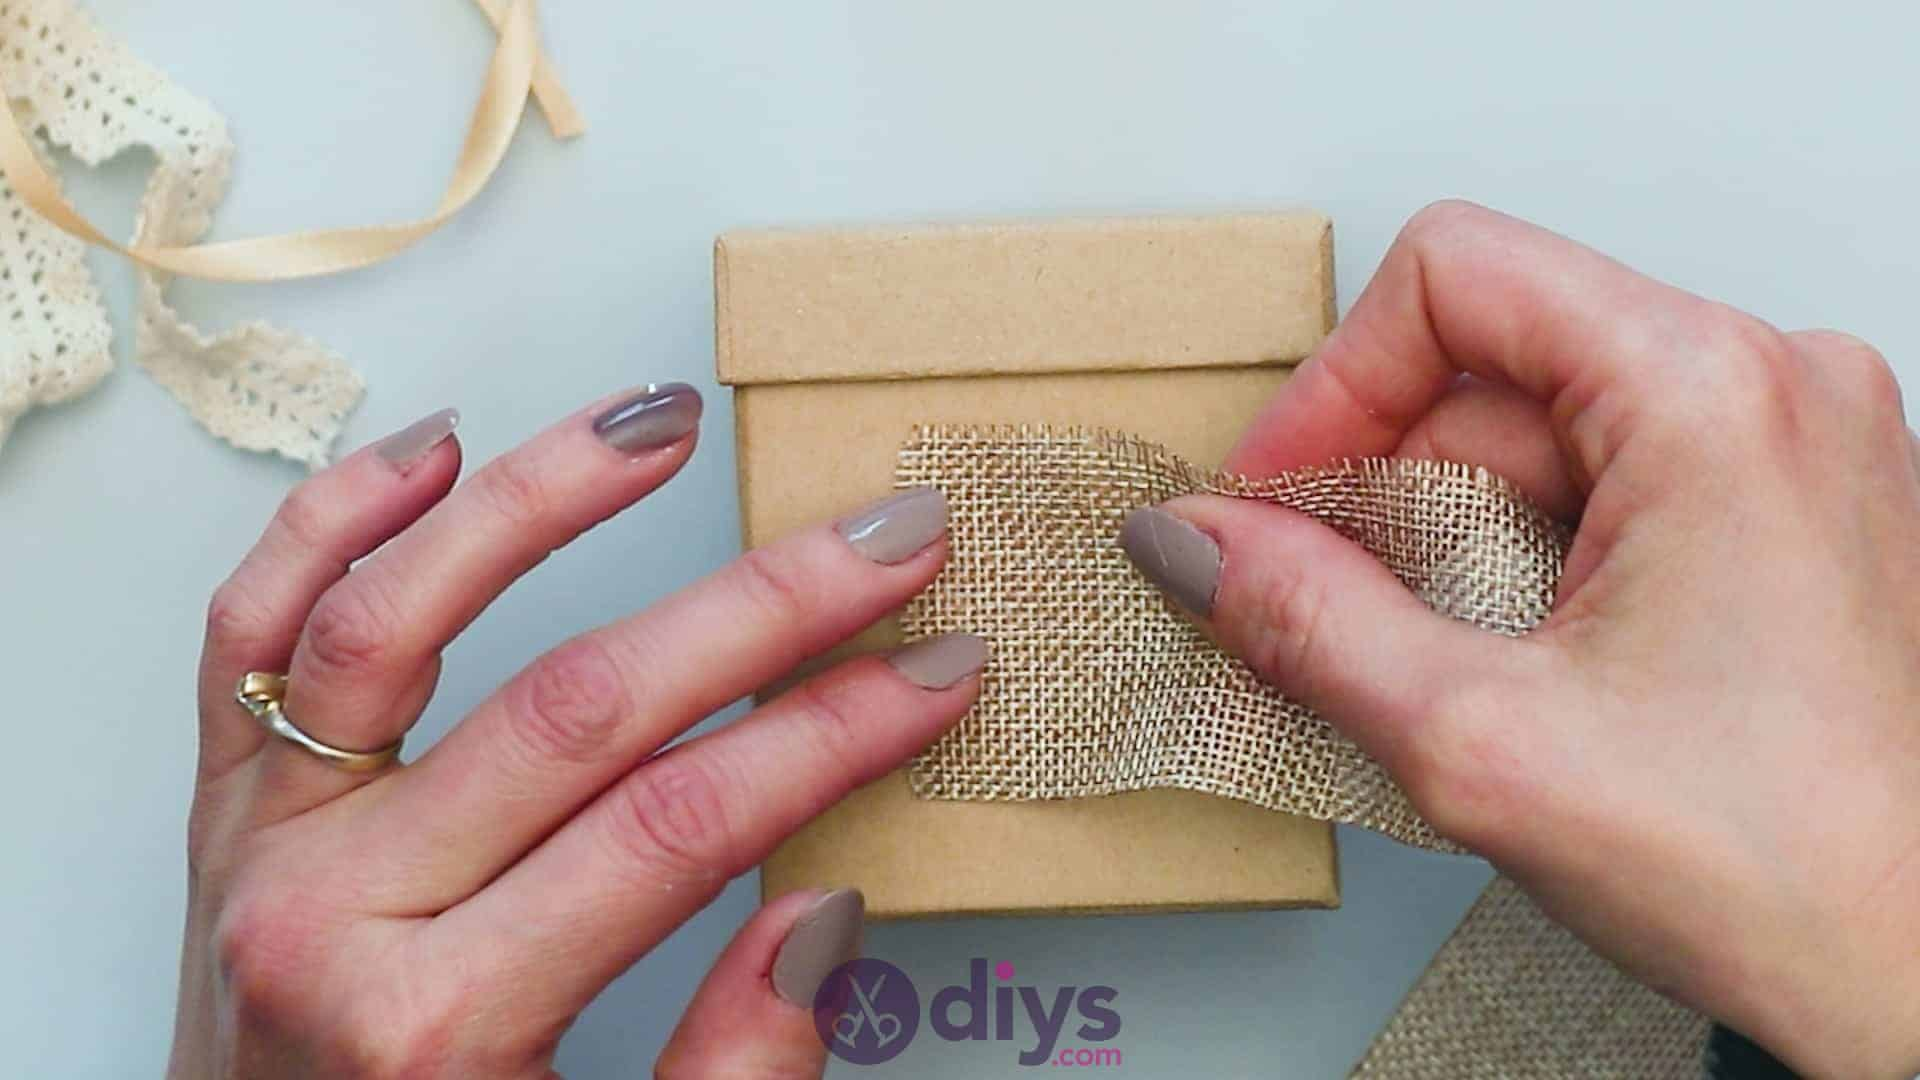 Diy jute gift box step 2a